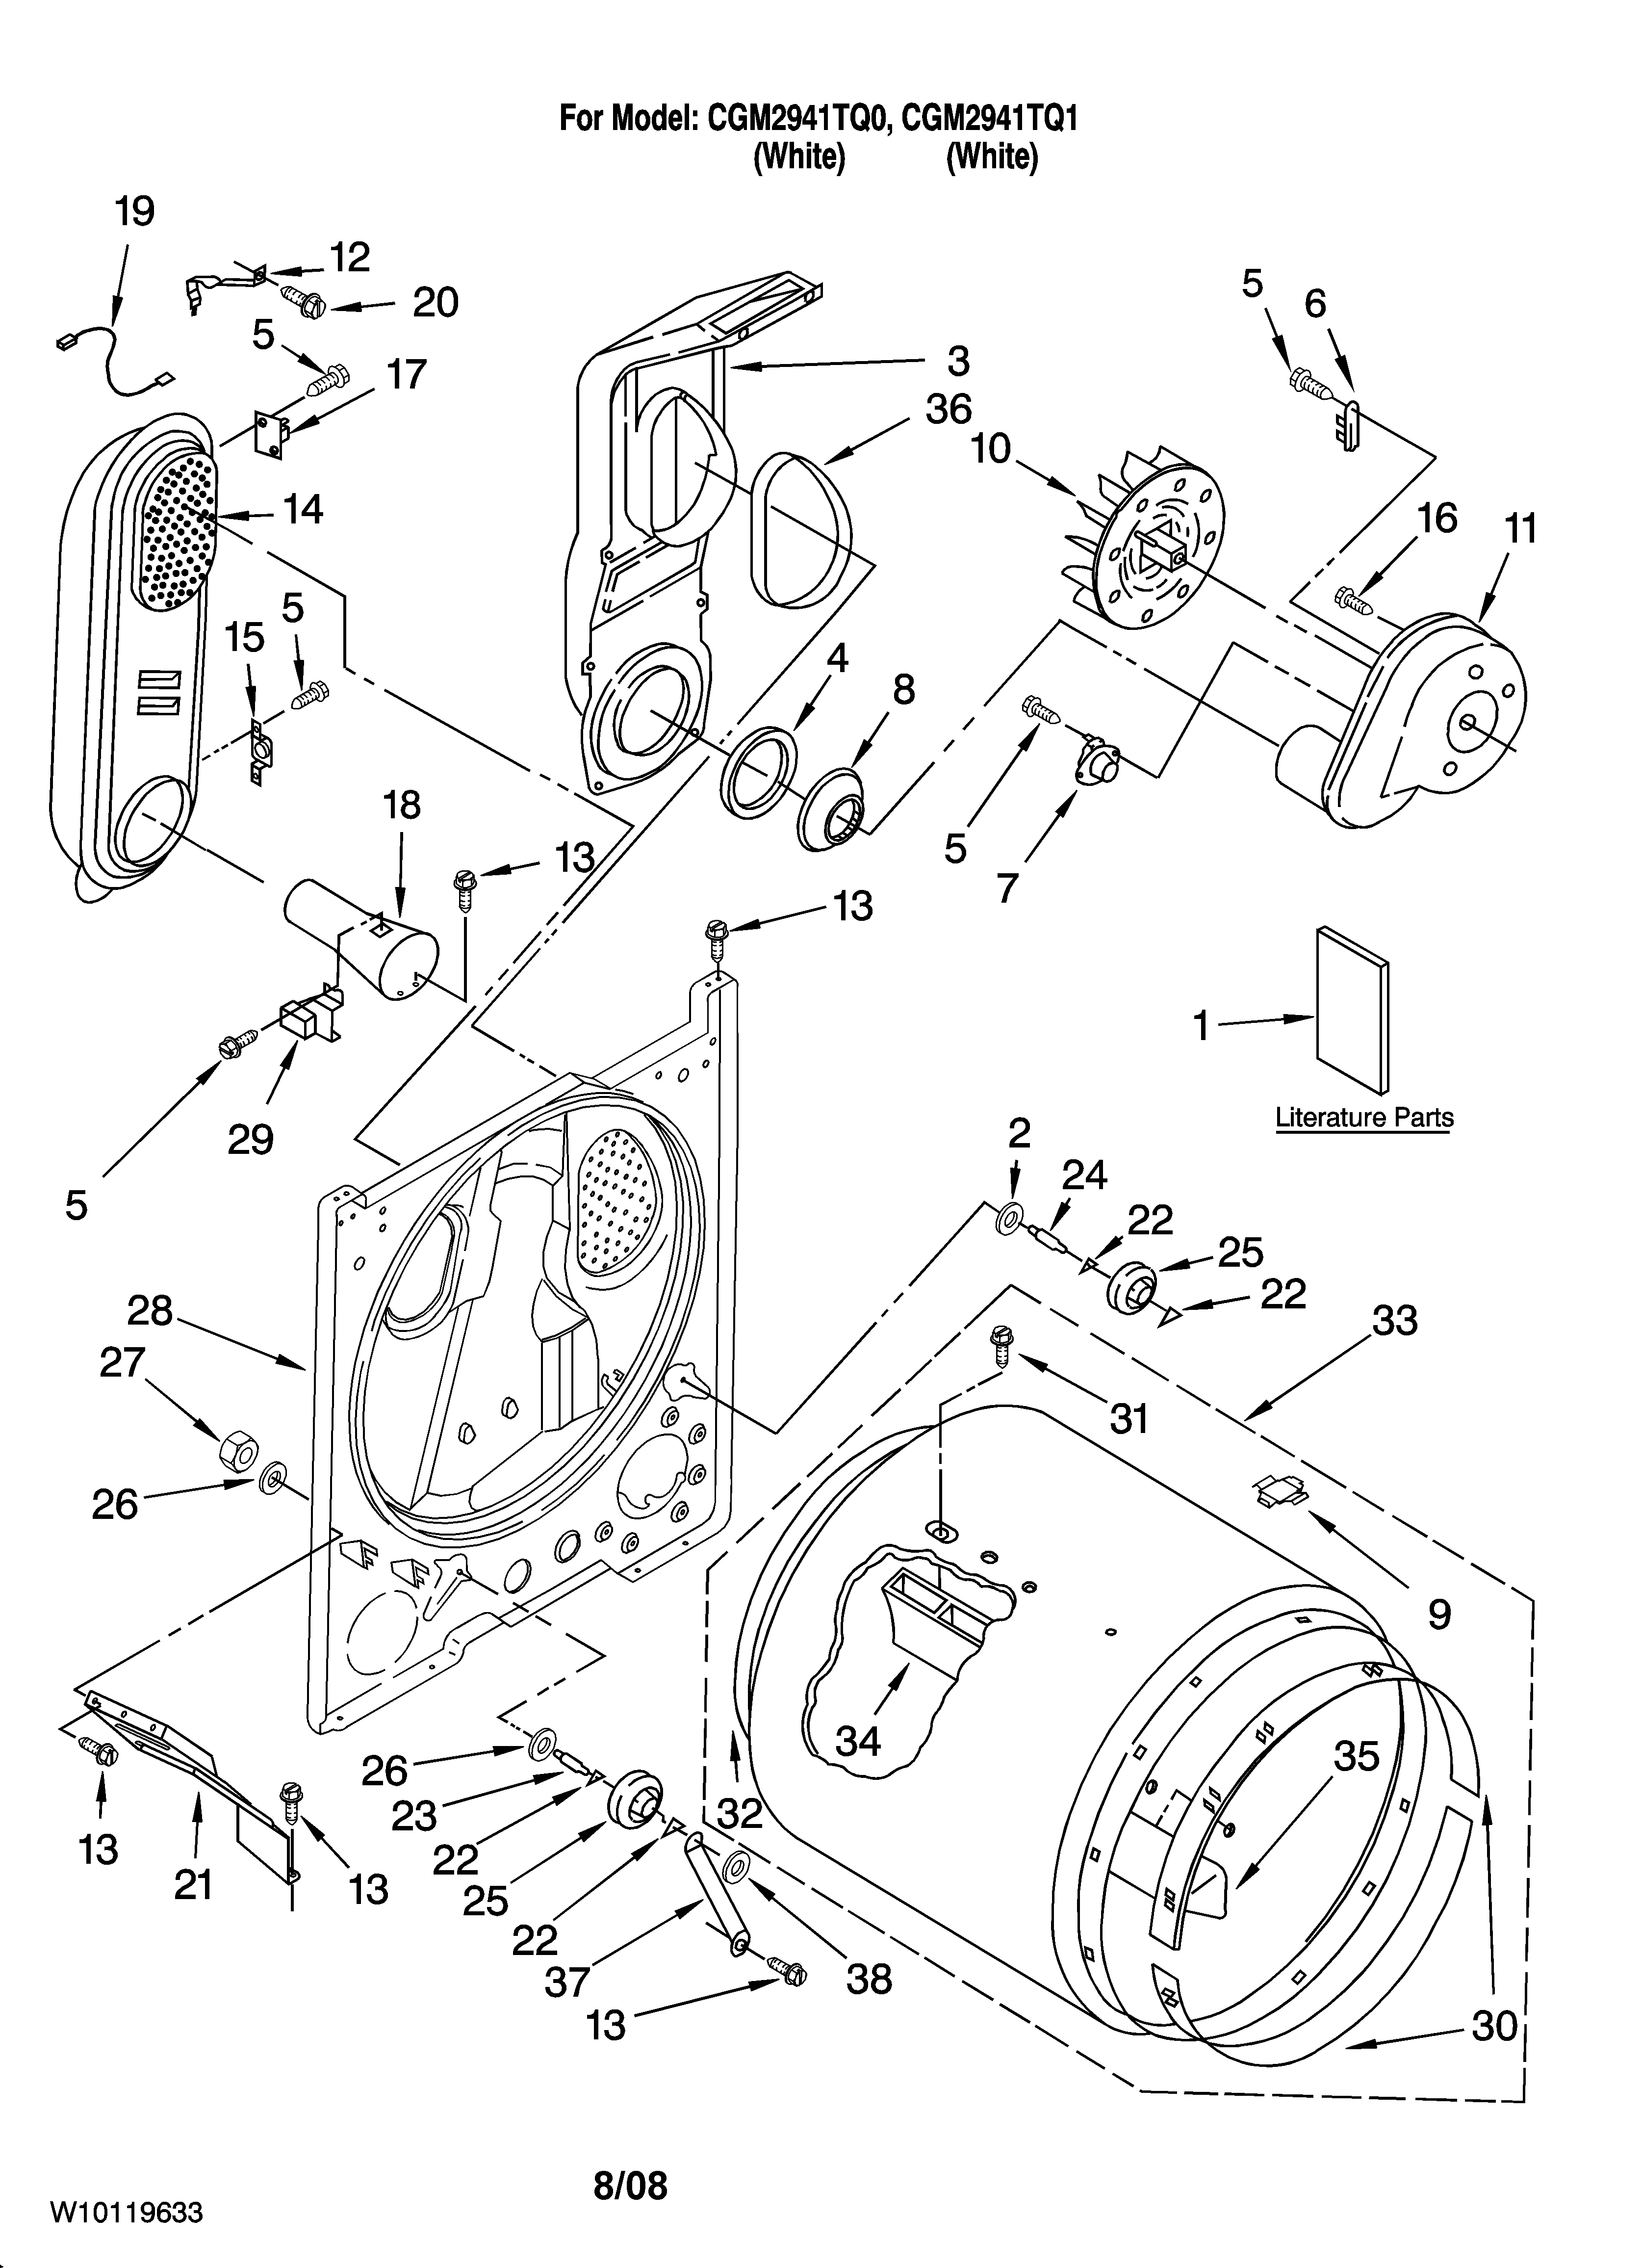 diagram parts list for model ler7646eq0 whirlpoolparts dryerparts